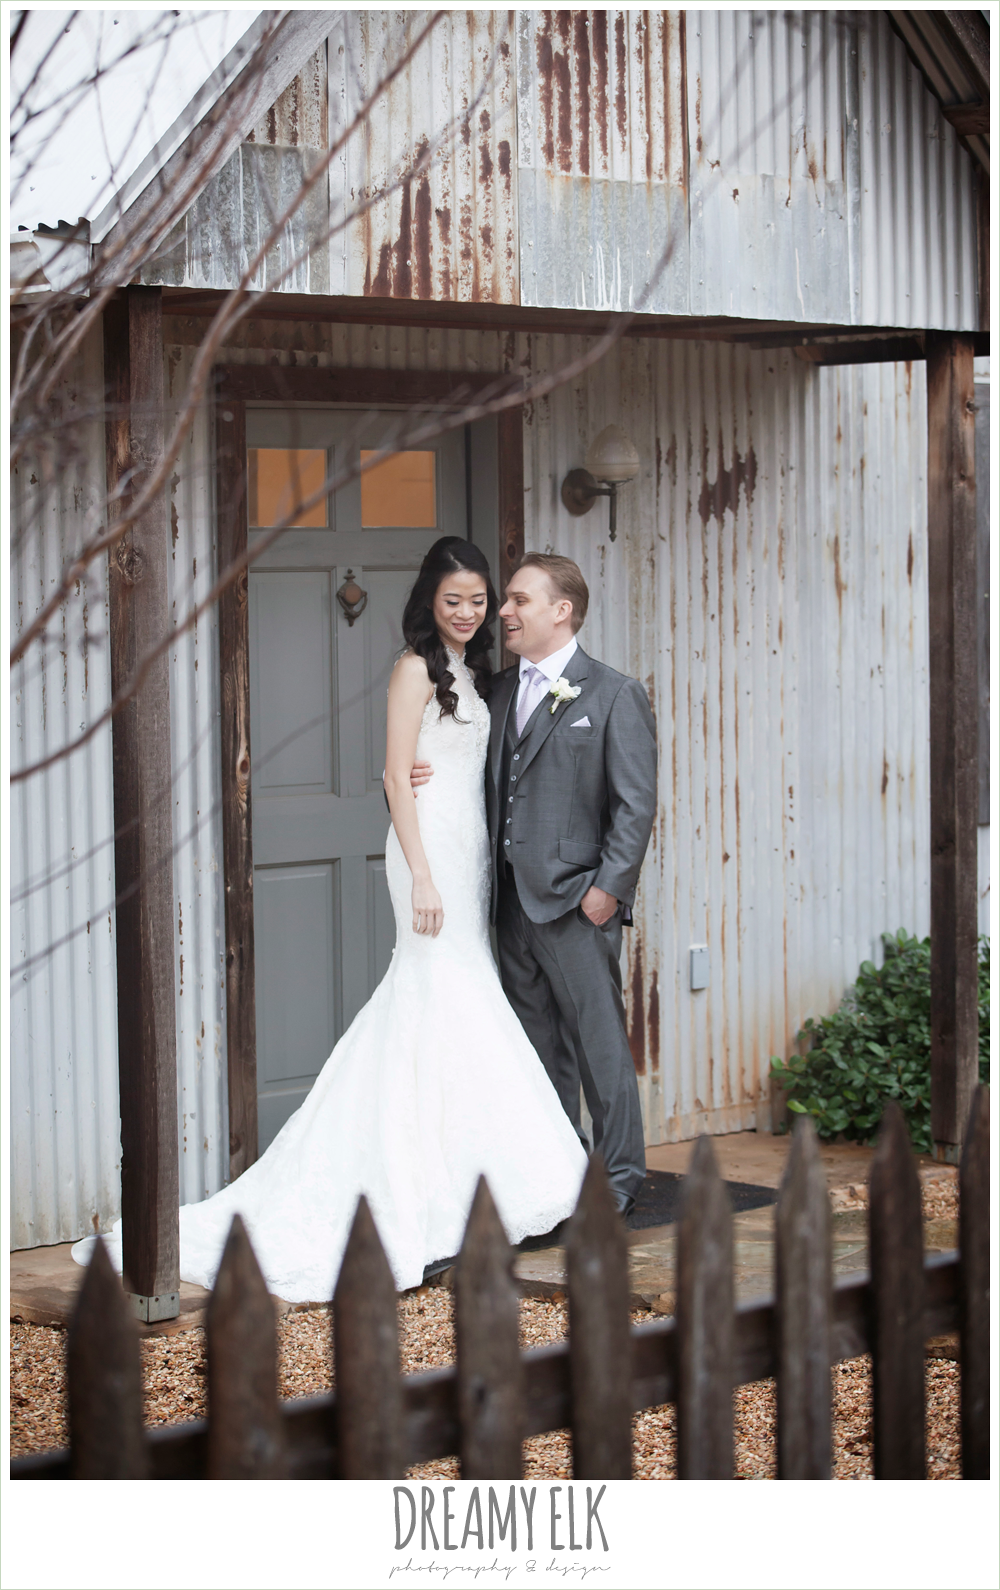 high necked trumpet wedding dress, groom in gray suit, foggy wedding day {dreamy elk photography and design}